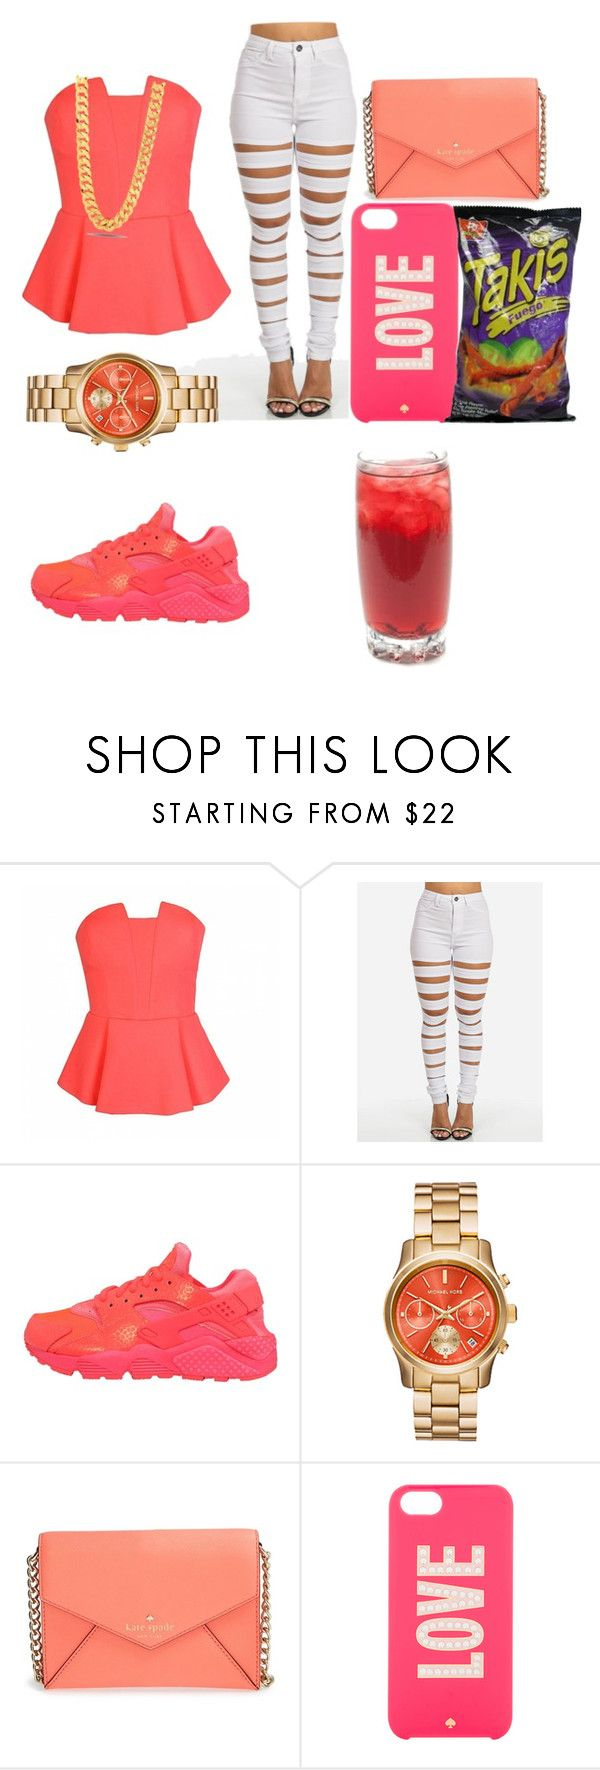 """Untitled #6"" by kirabvtch ❤ liked on Polyvore featuring Belleza, Ally Fashion, NIKE, Kate Spade y King Ice"